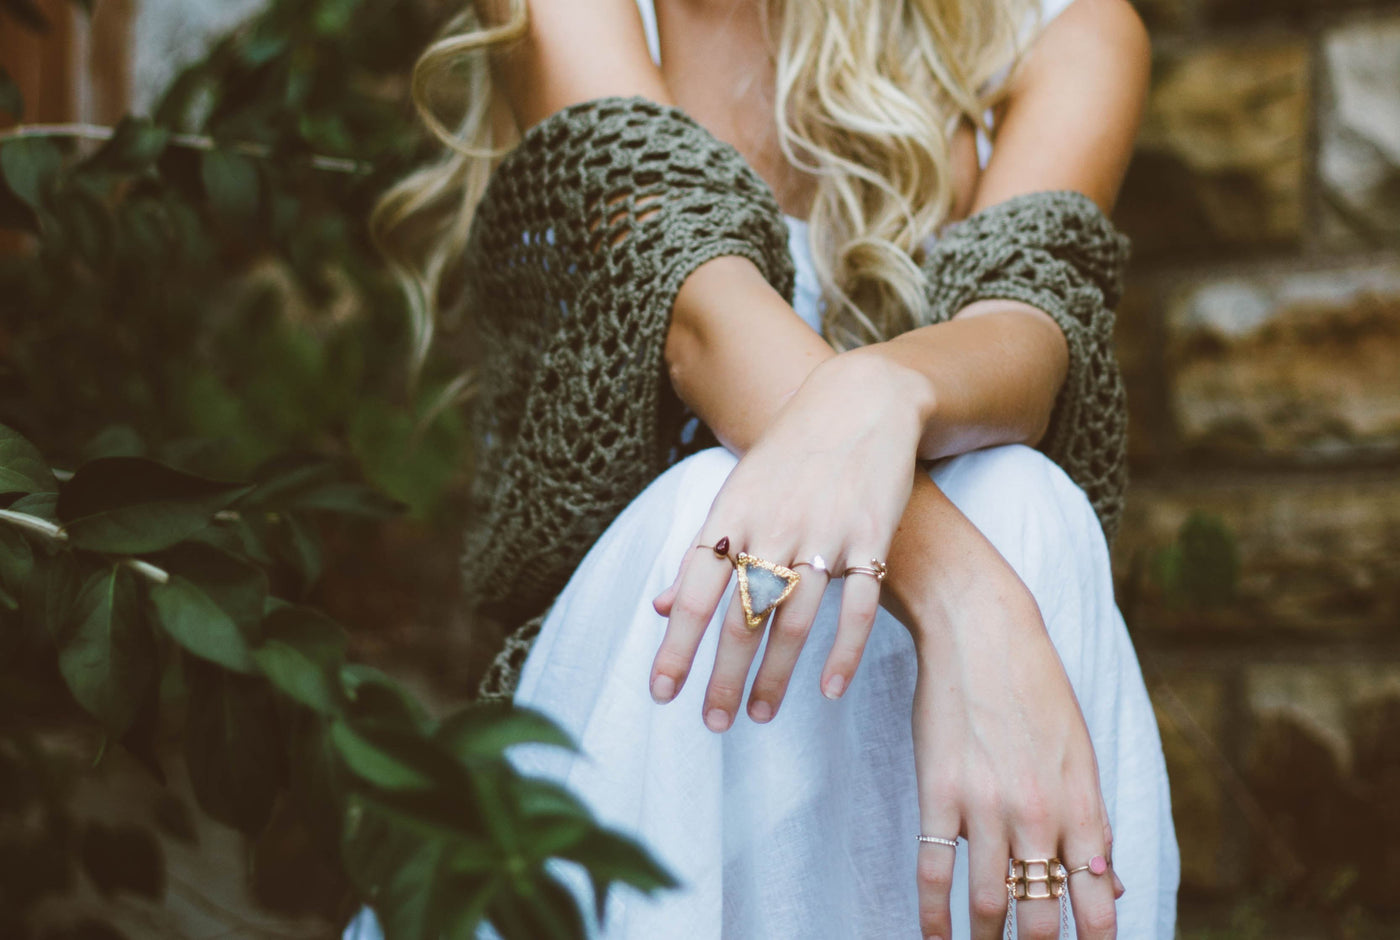 Woman's hands with custom jewelry